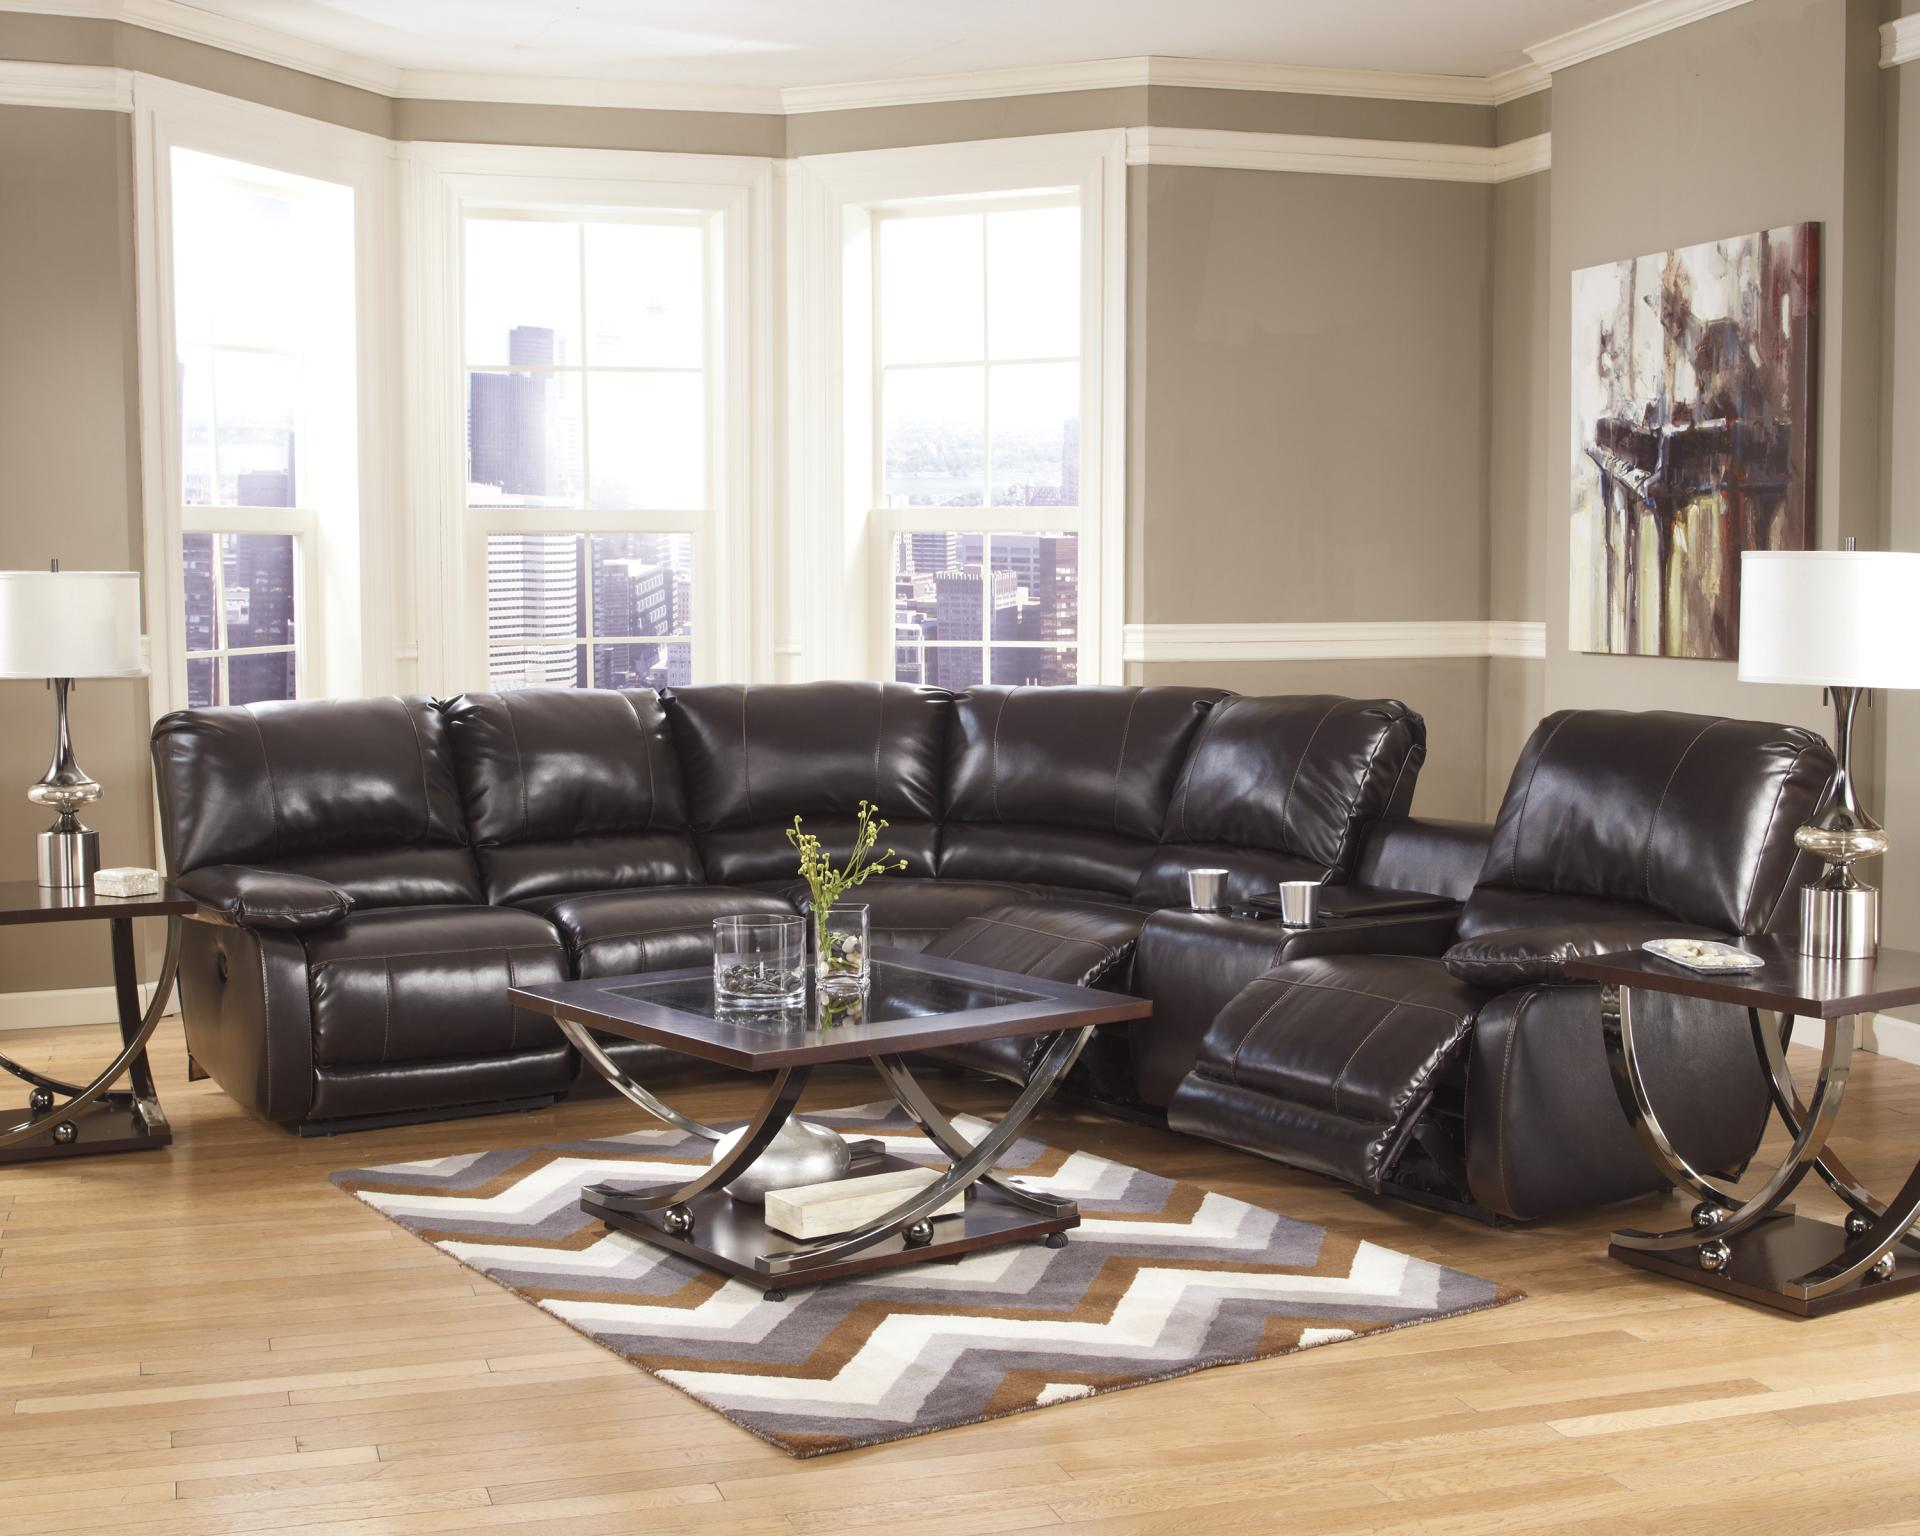 Abden Furniture Corp Sectionals